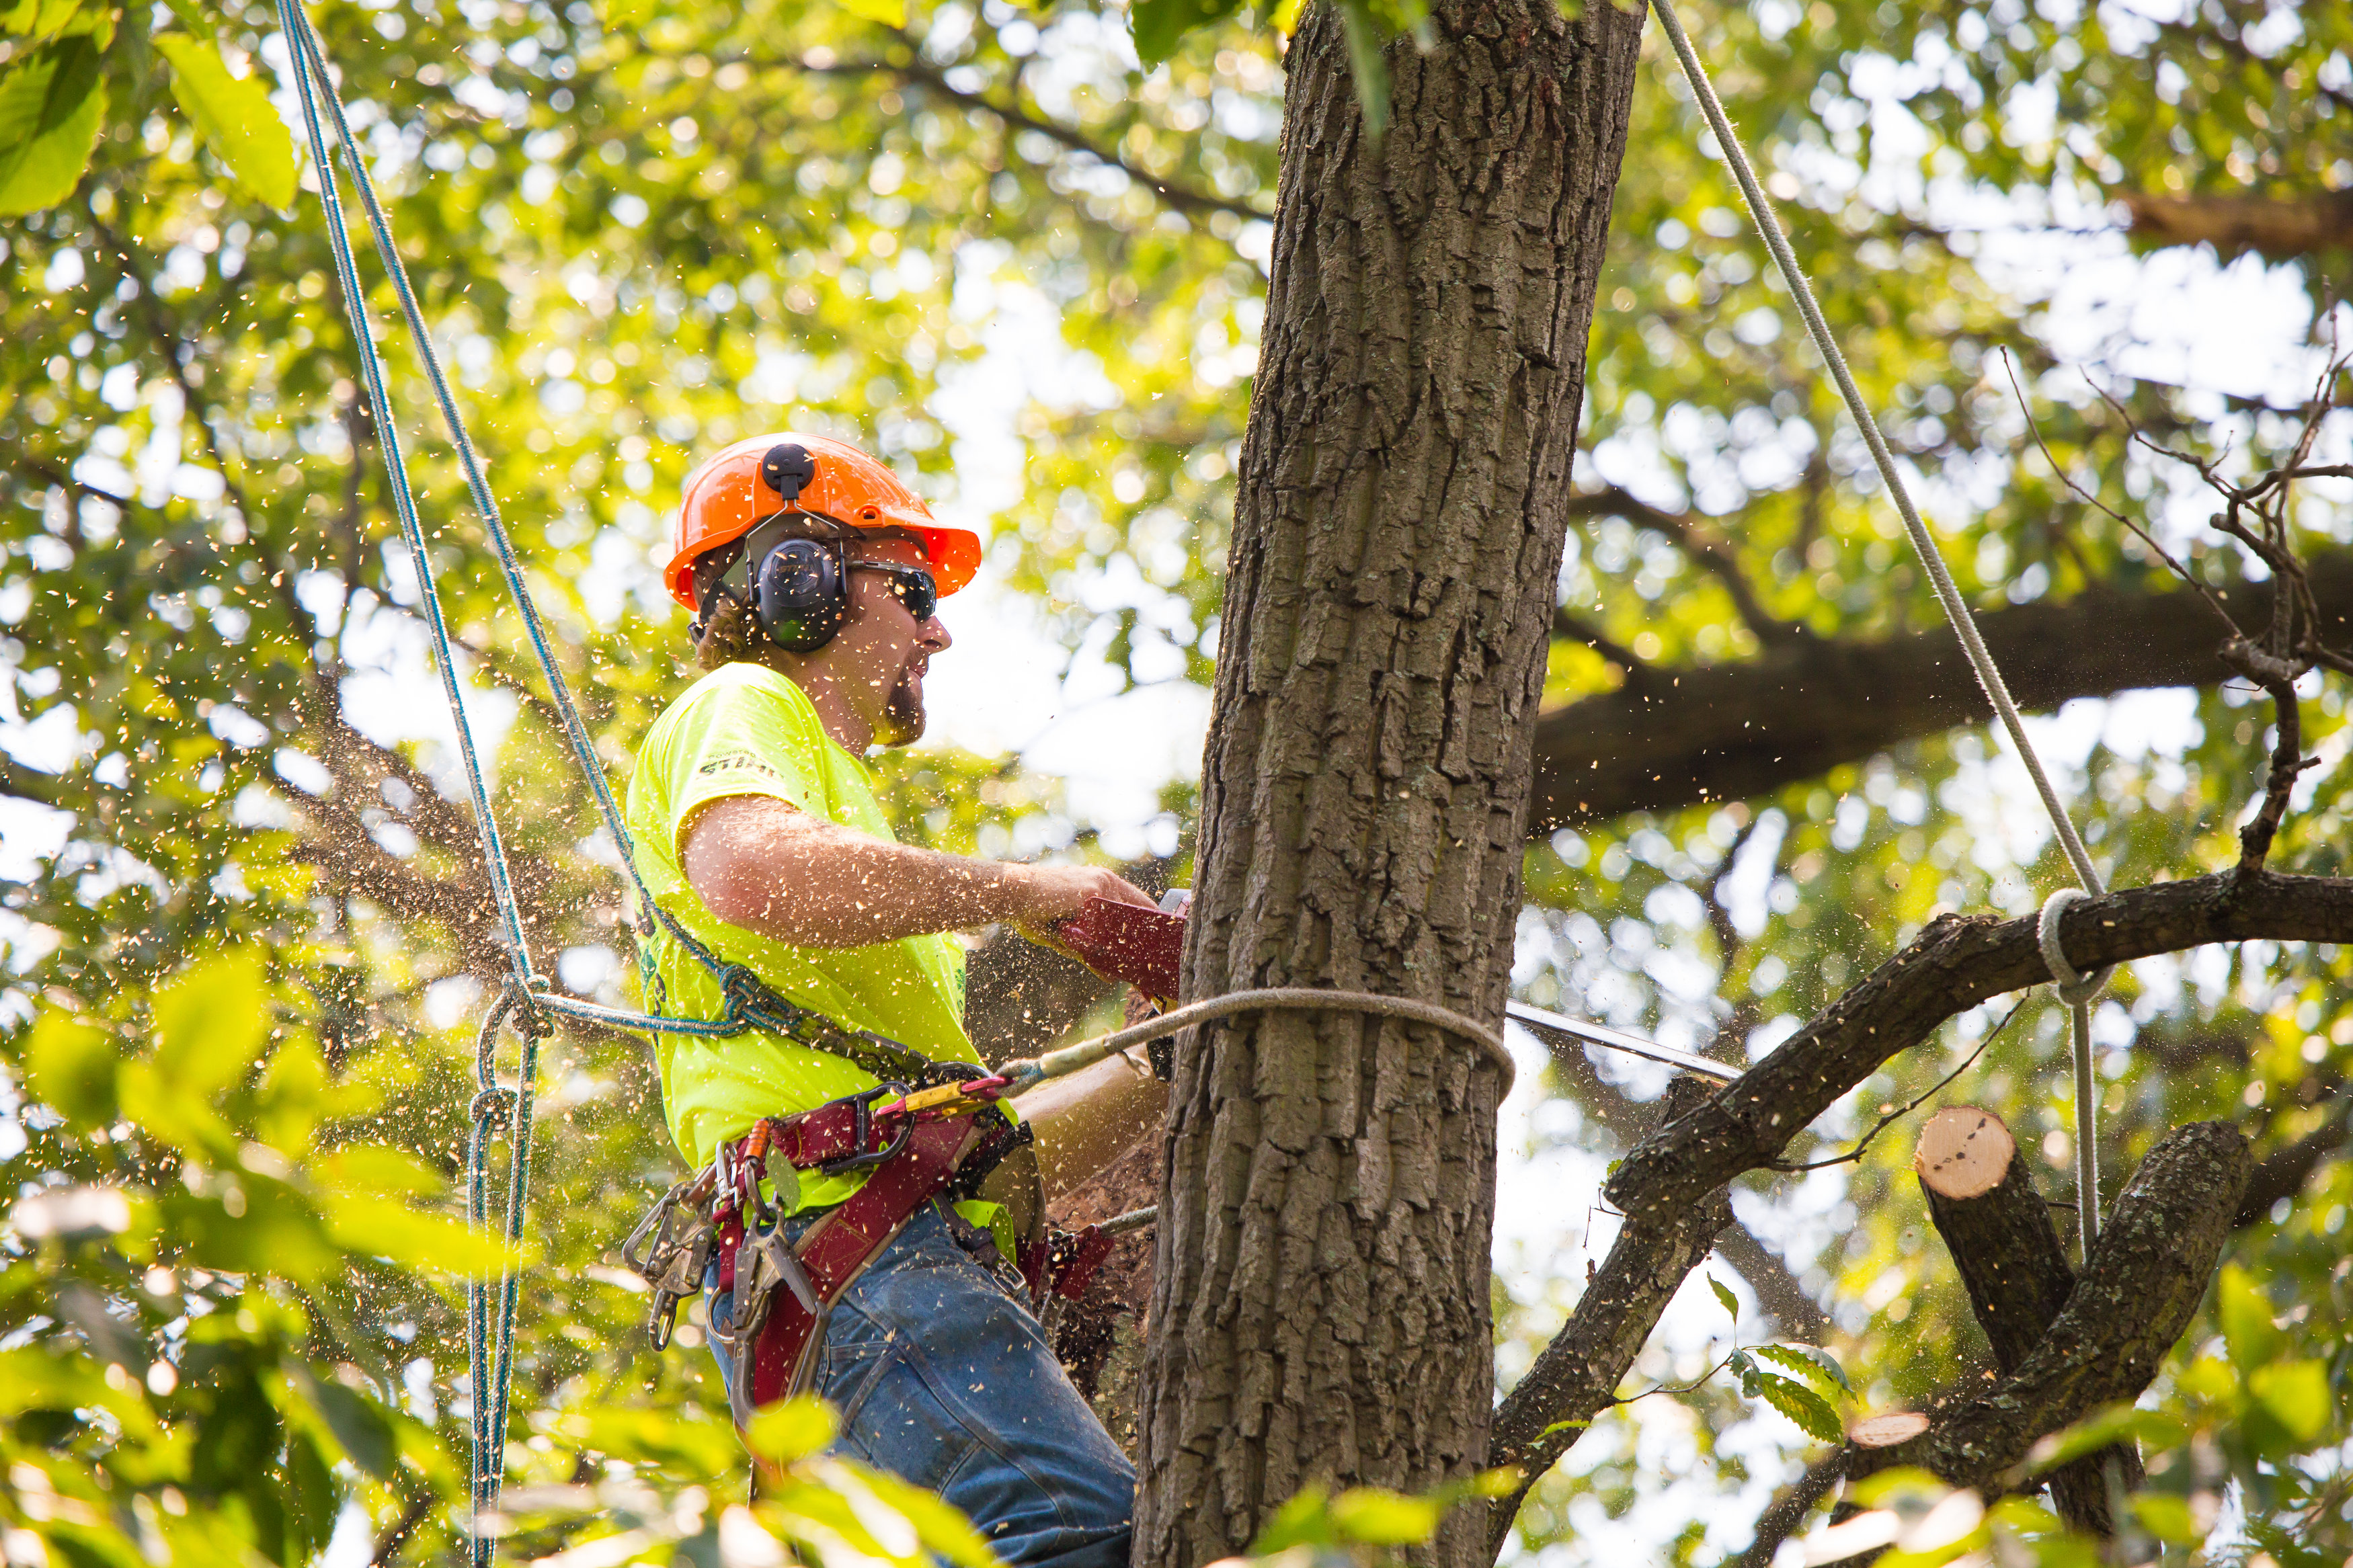 Professional Tree Service - Expert's Advice Works